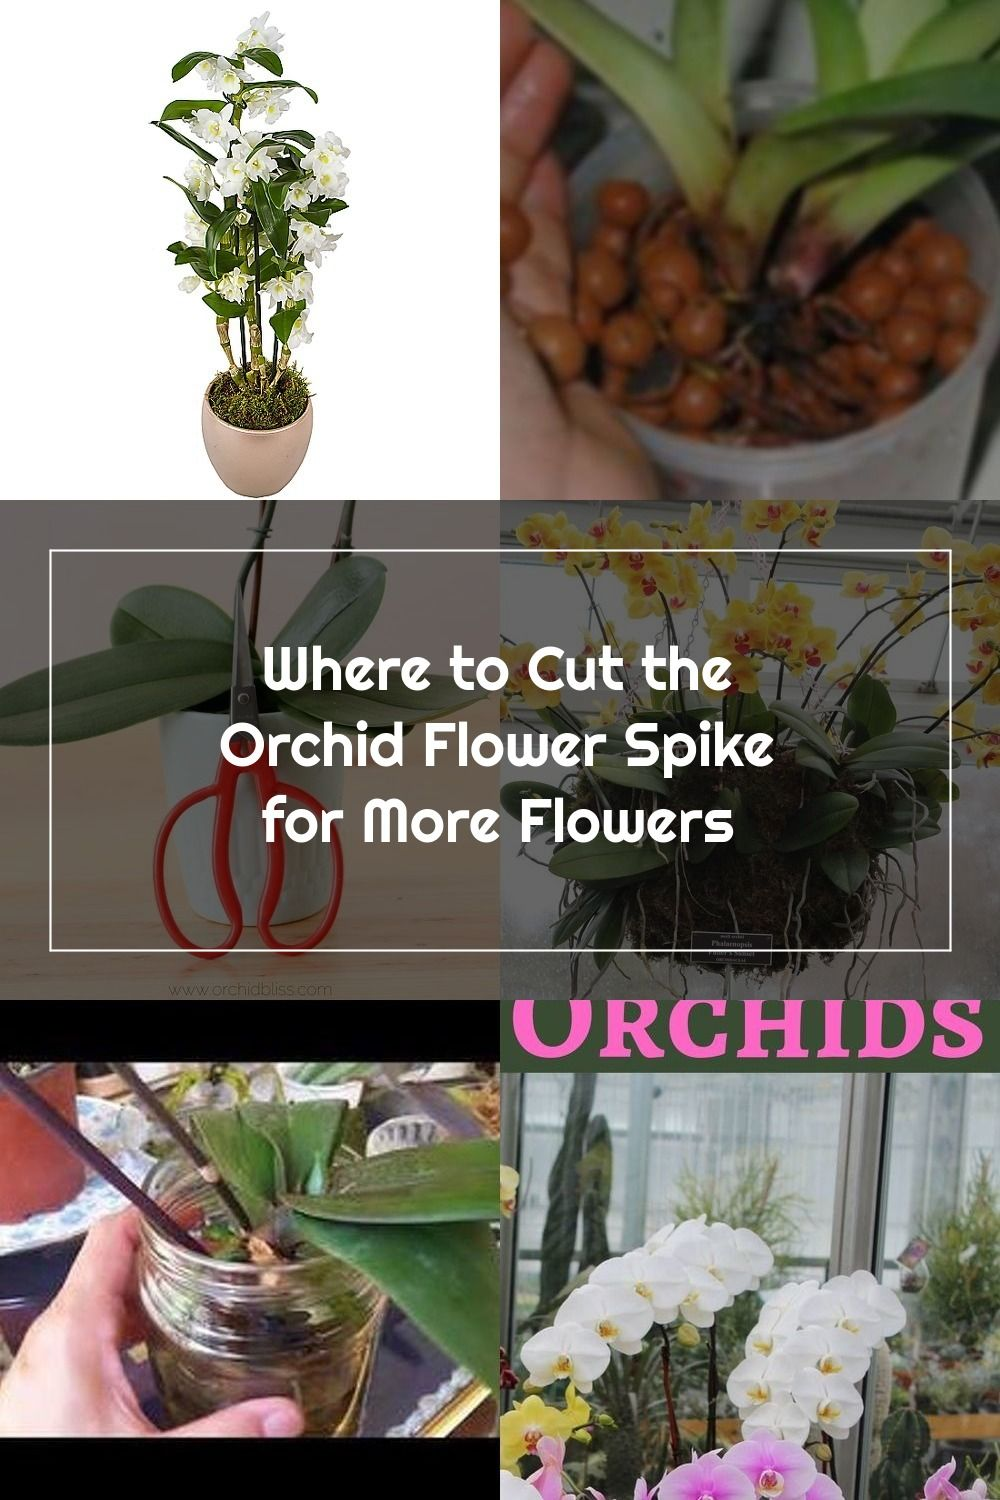 You Ve Enjoyed Your Orchid For Several Months And Now The Flowers Are Wilting And Dropping It Is Time To Trim The Orchid St In 2020 Orchid Flower Orchids Orchid Care